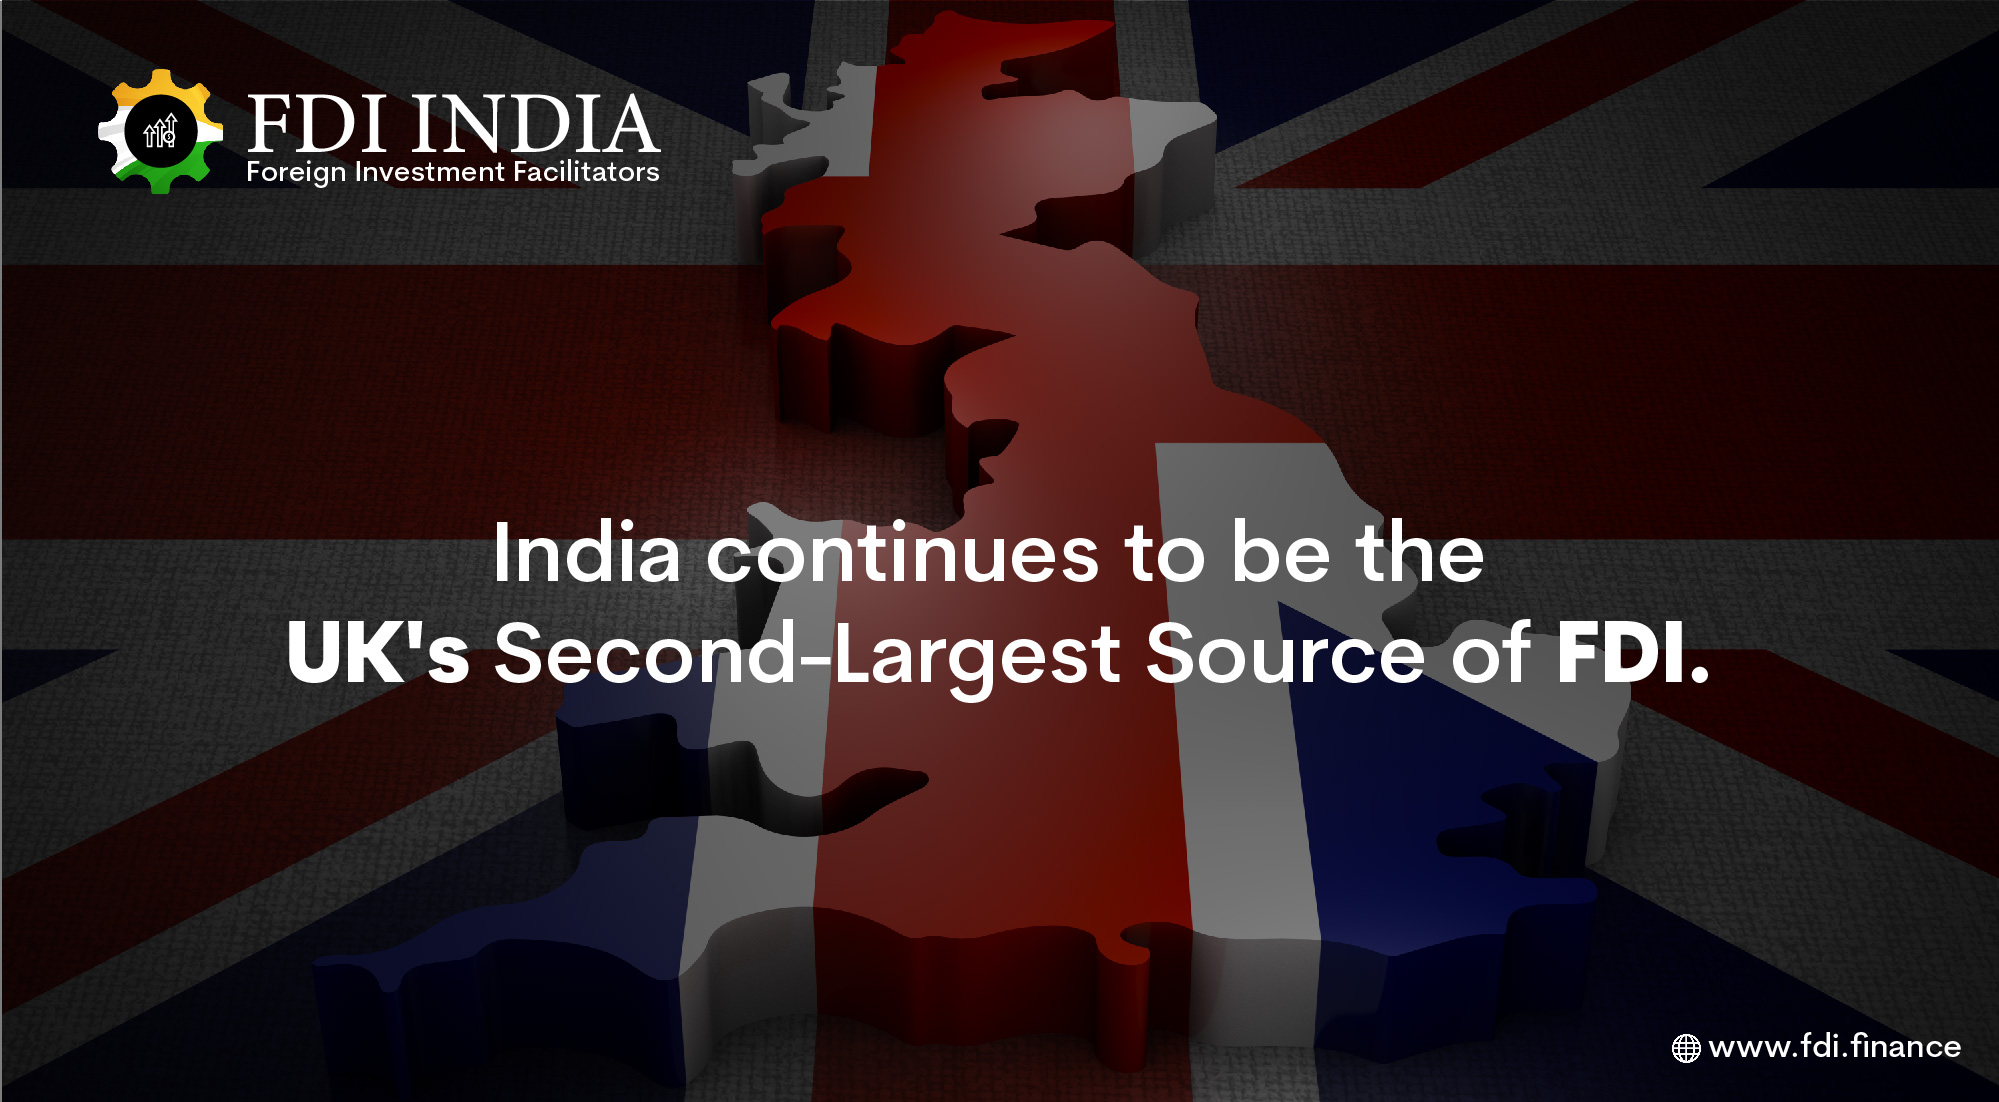 India continues to be the UK's Second-Largest Source of FDI